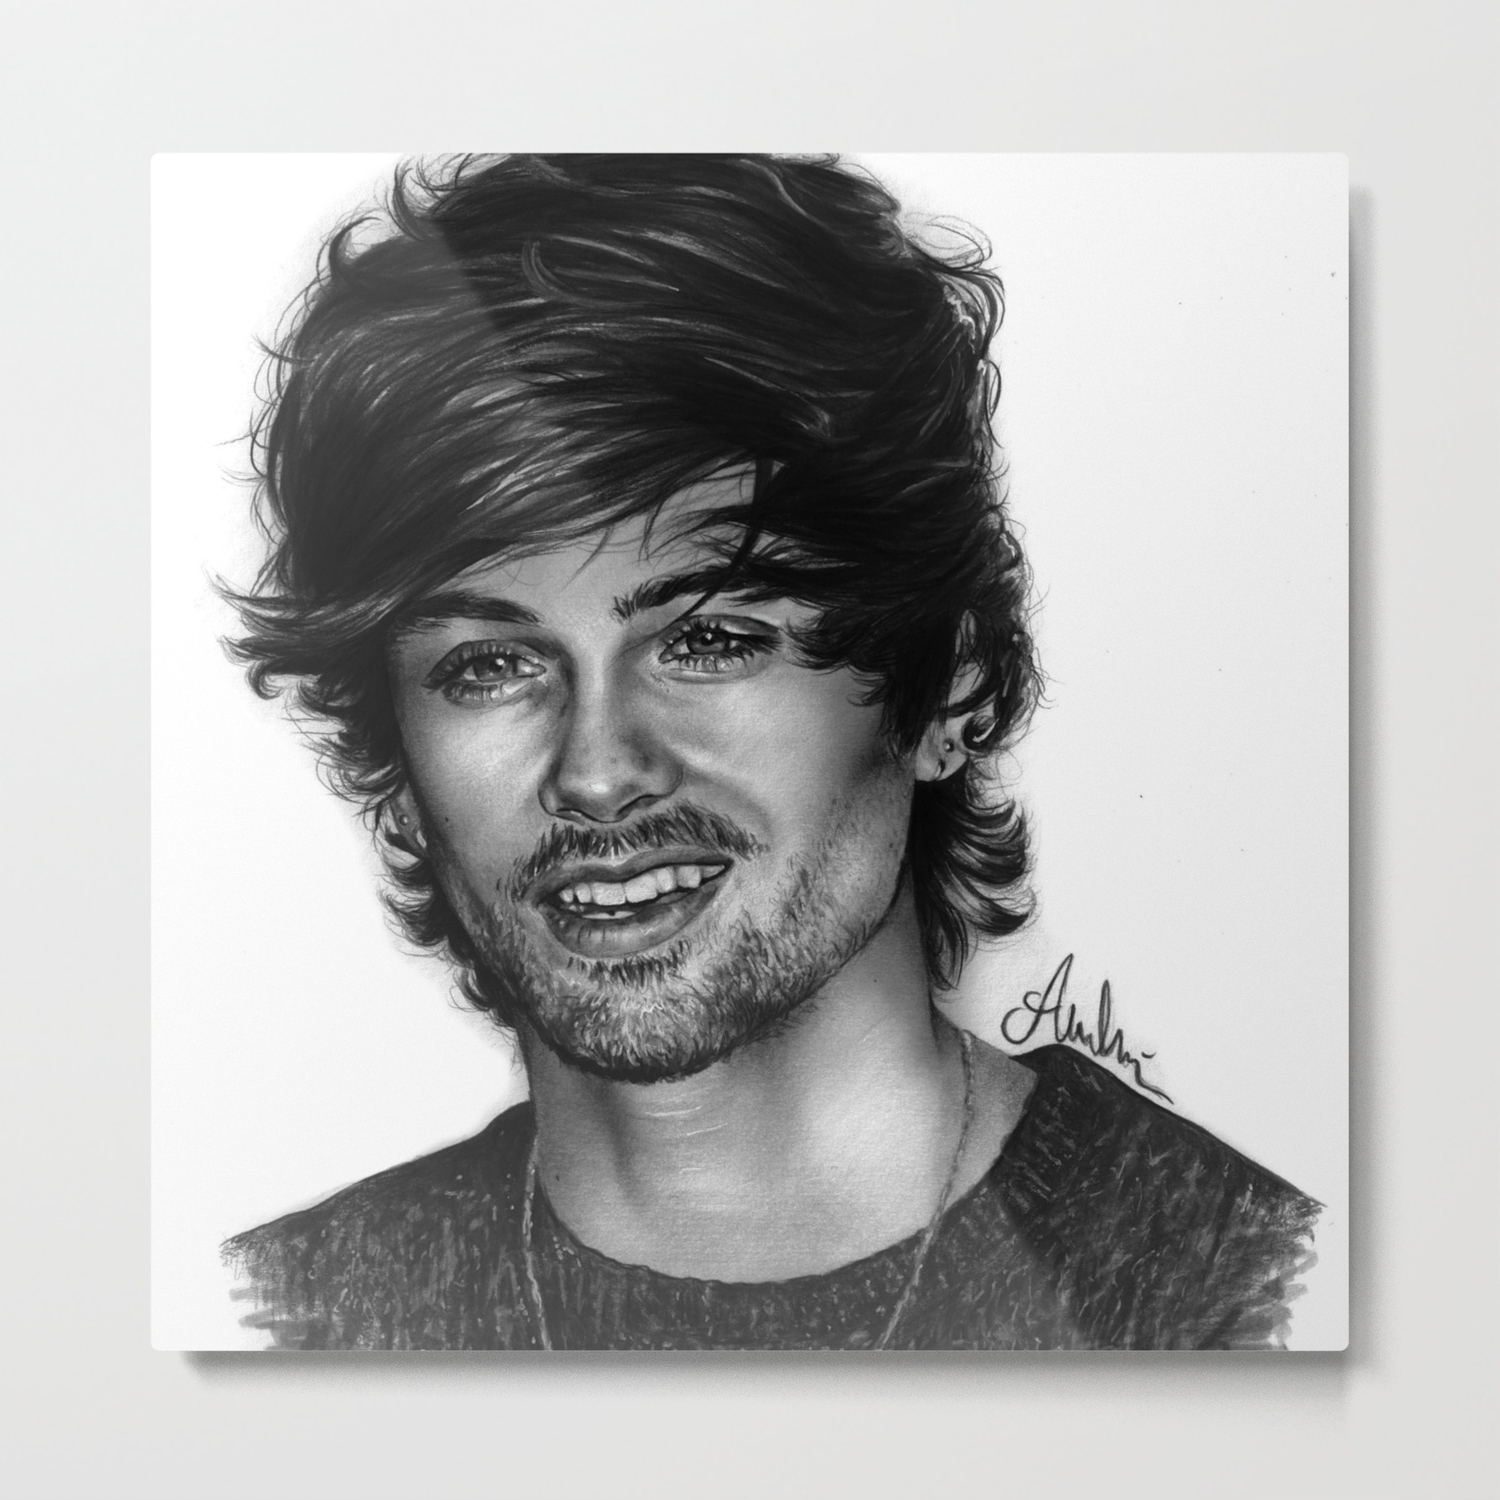 Zayn malik pencil drawing by annasartwork metal print